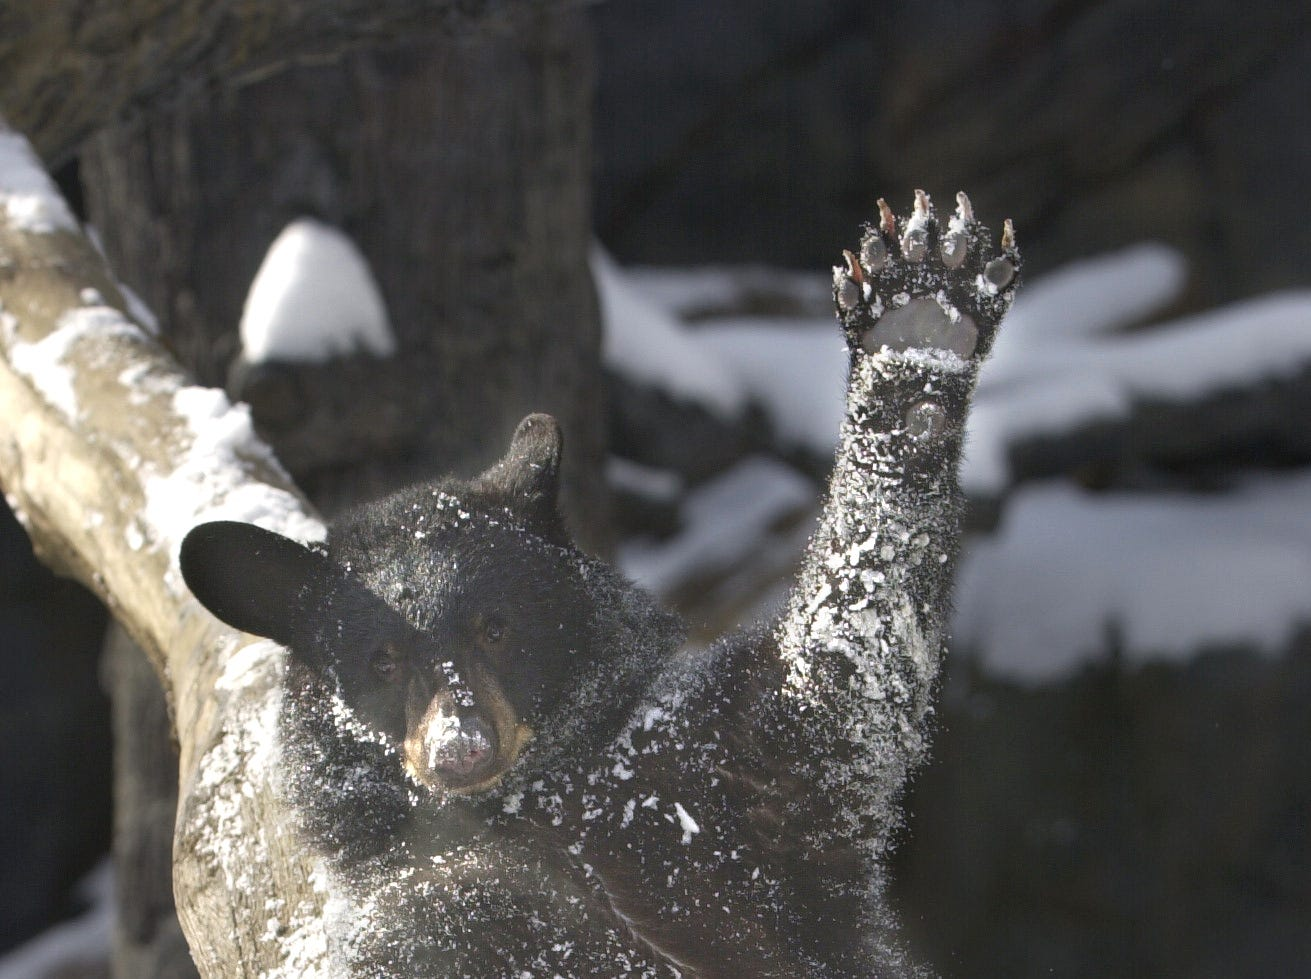 One-year-old Ursula frolics in the snow in the Black Bear Falls habitat Thursday, Jan. 23, 2003, at the Knoxville Zoo. The 80-pound bruin was making the most of her first taste of snow.